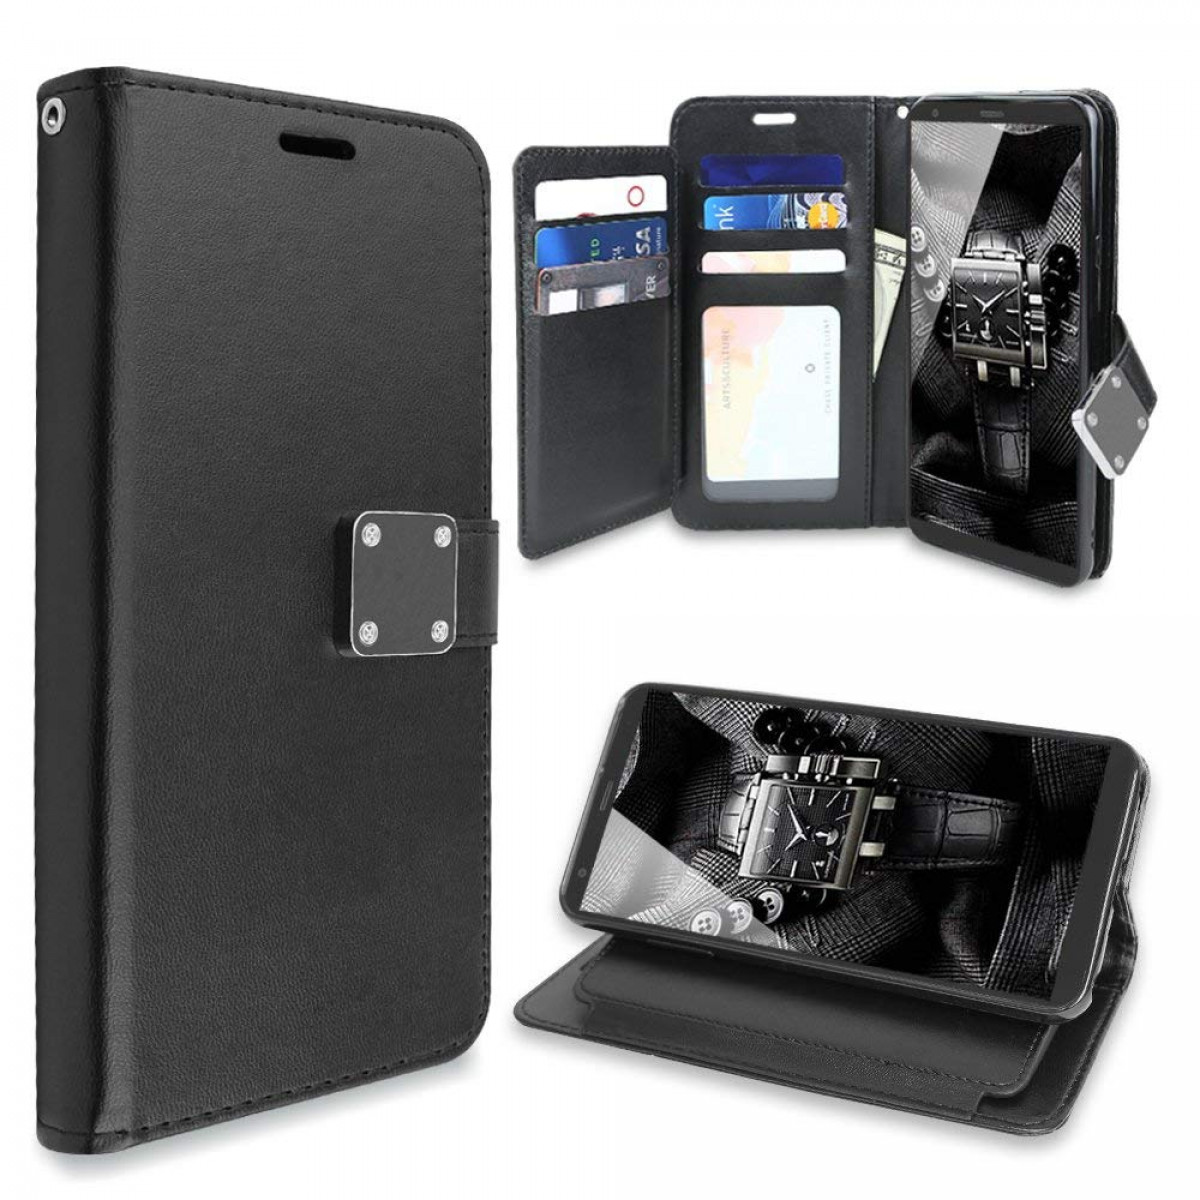 TJS LG Stylo 4 2018 / LG Stylo 4 Plus/LG Q Stylus Case, Hybrid PU Leather  Folding Folio Style Wallet 5 Card Slots to Hold Cards Stand Flip Pouch  Phone